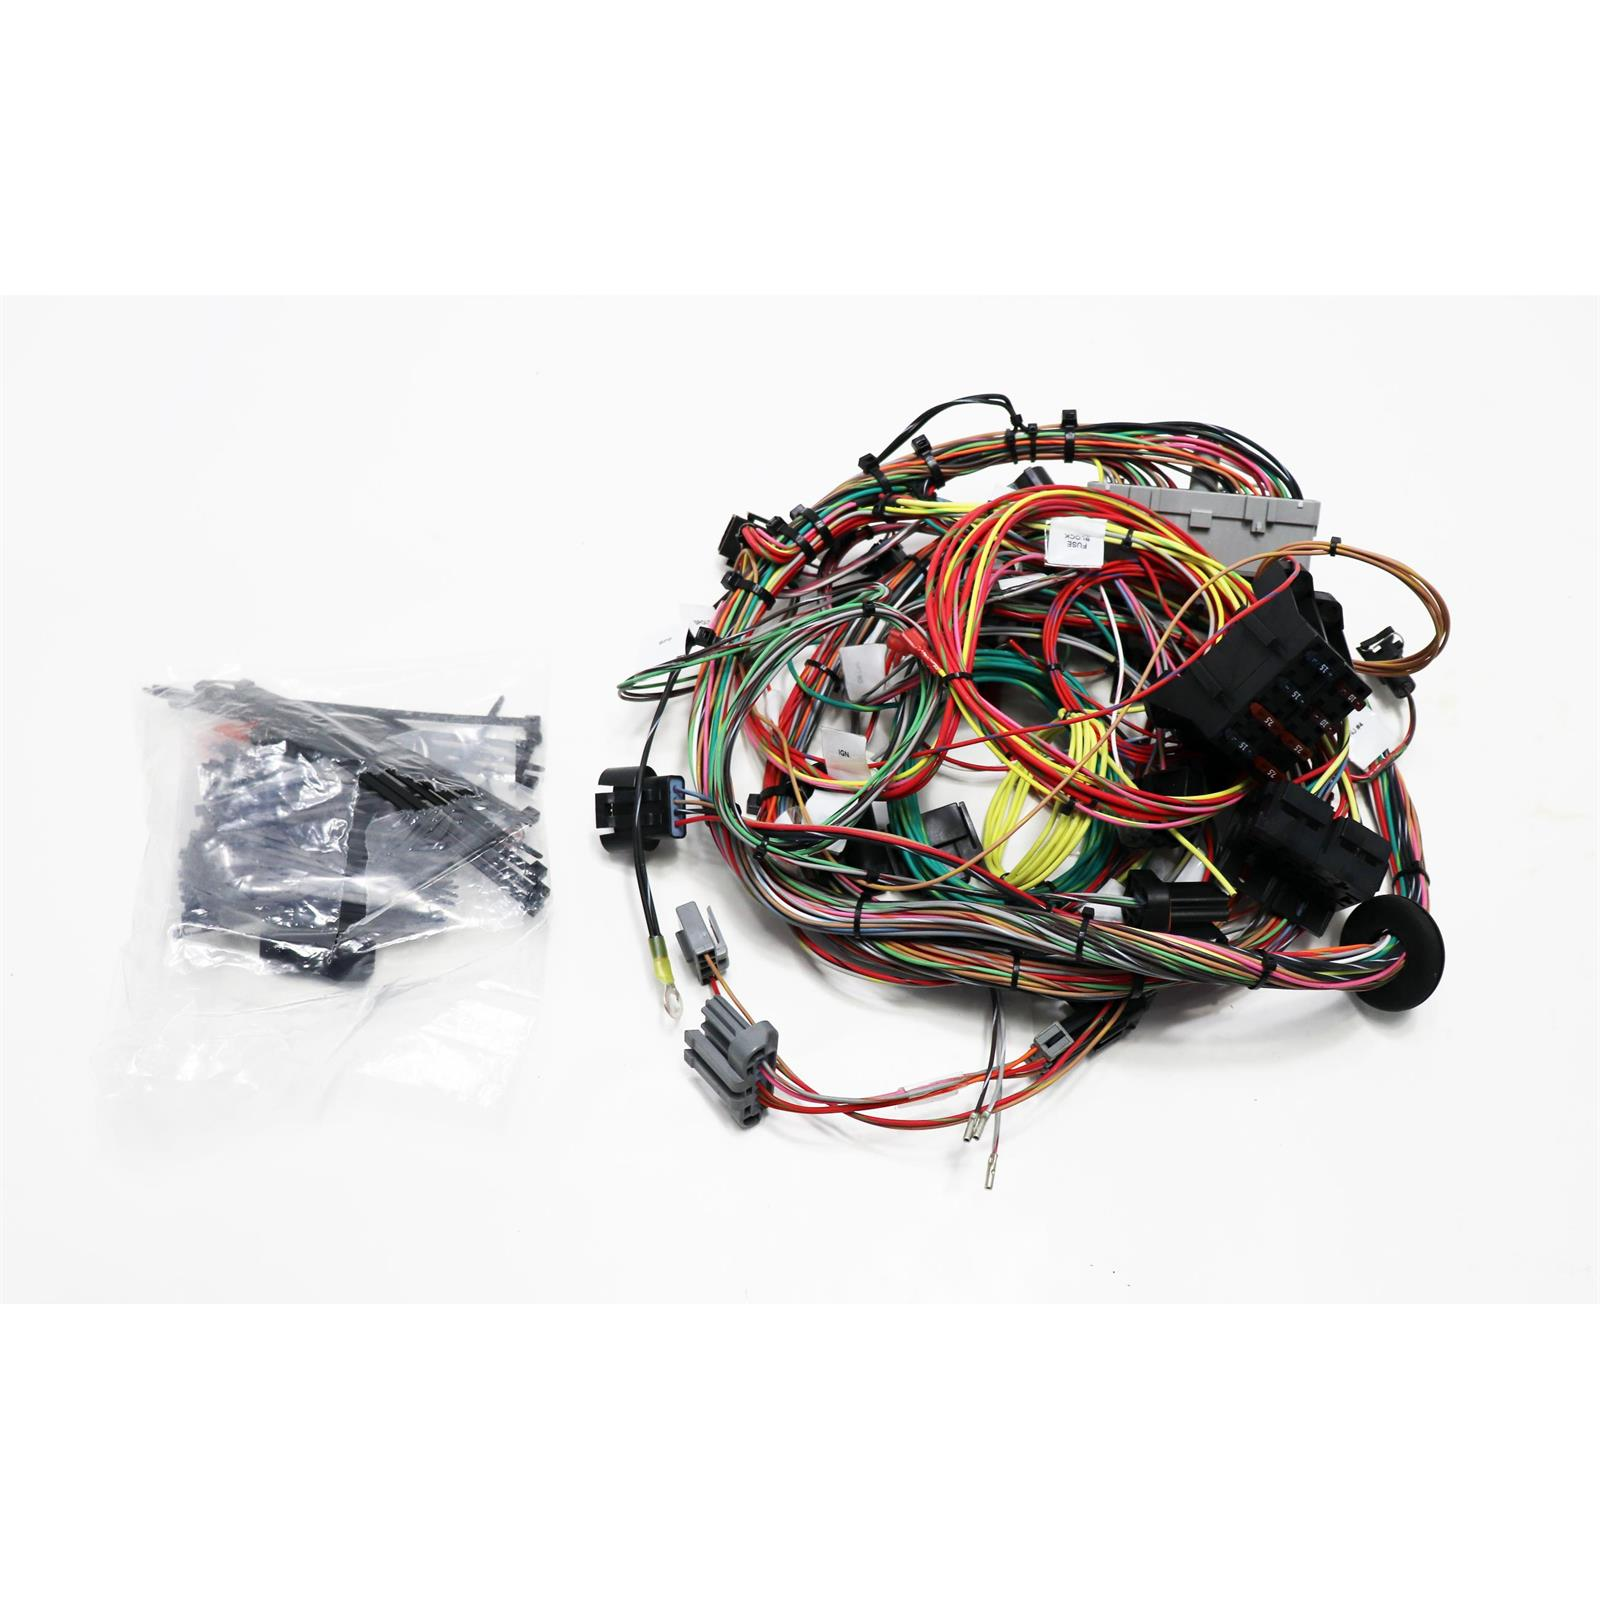 hight resolution of painless wiring 60510 ford 1986 95 5 0l efi wire harness painless performance 60510 50 fuel injection wiring harness